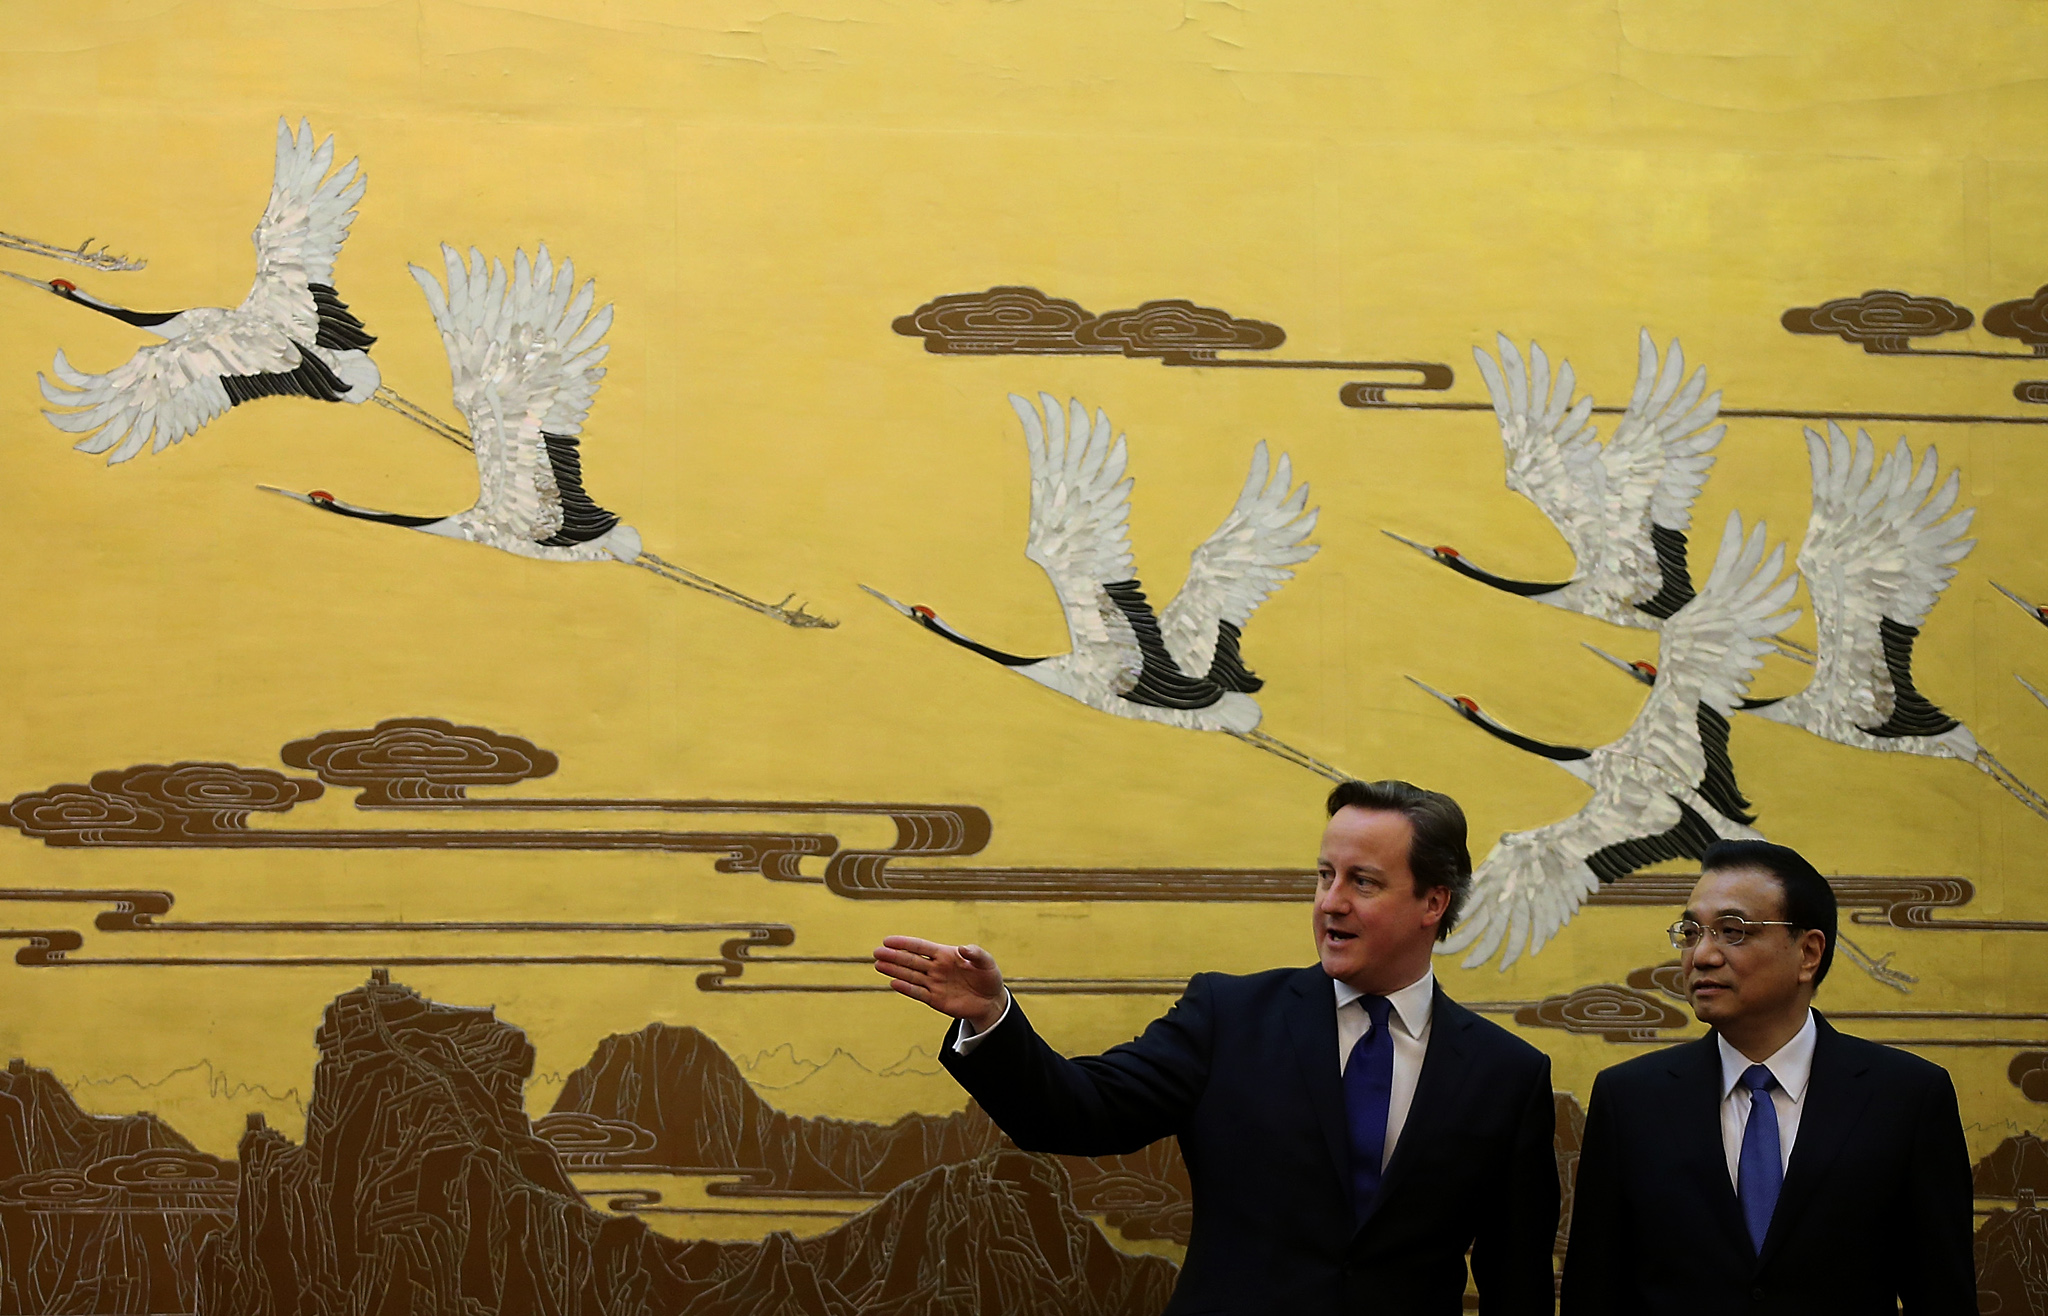 British Prime Minister David Cameron Visits China